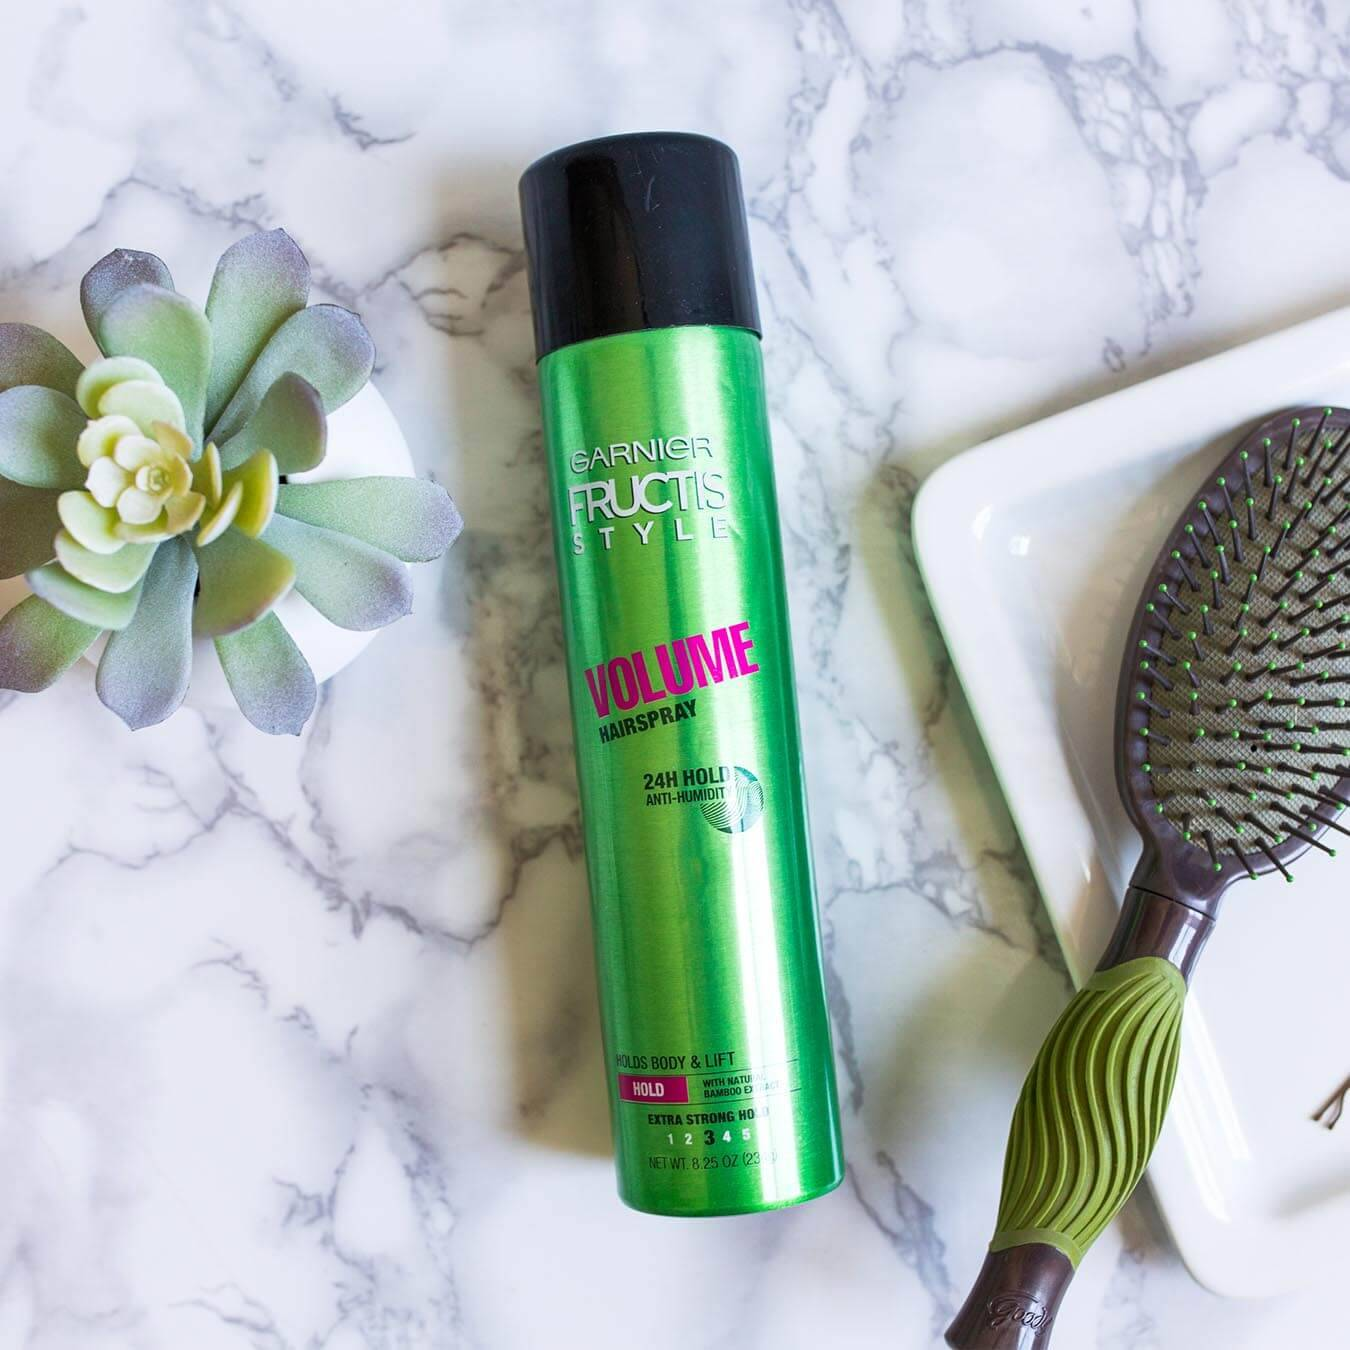 Garnier Fructis Style Volume Hairspray on white marble next to a potted succulent and a white tray holding a bobby pin and a green and brown brush.